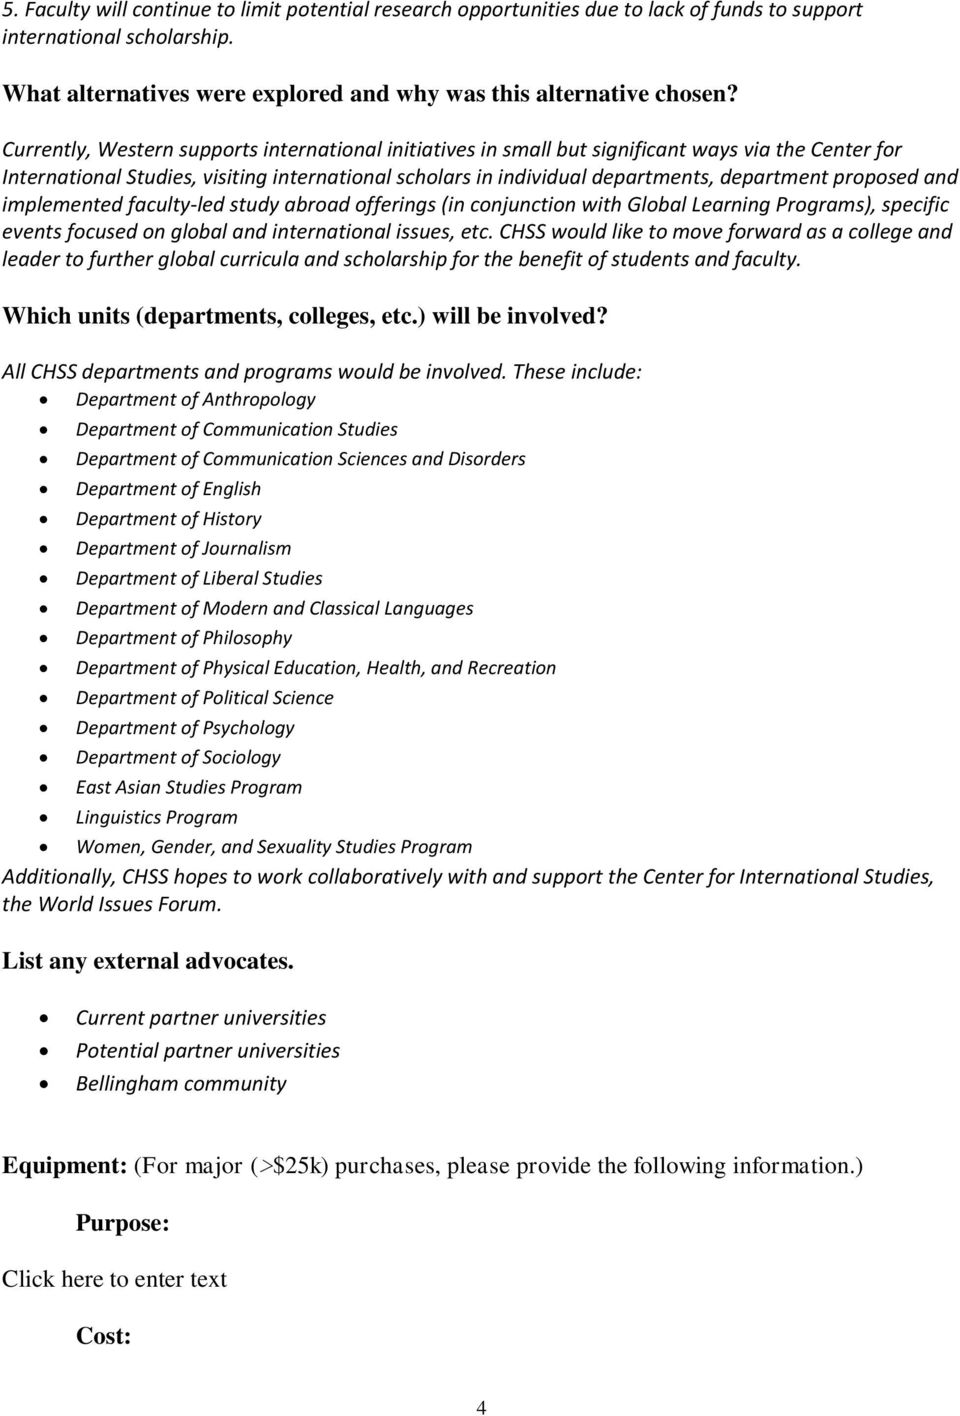 proposed and implemented faculty-led study abroad offerings (in conjunction with Global Learning Programs), specific events focused on global and international issues, etc.